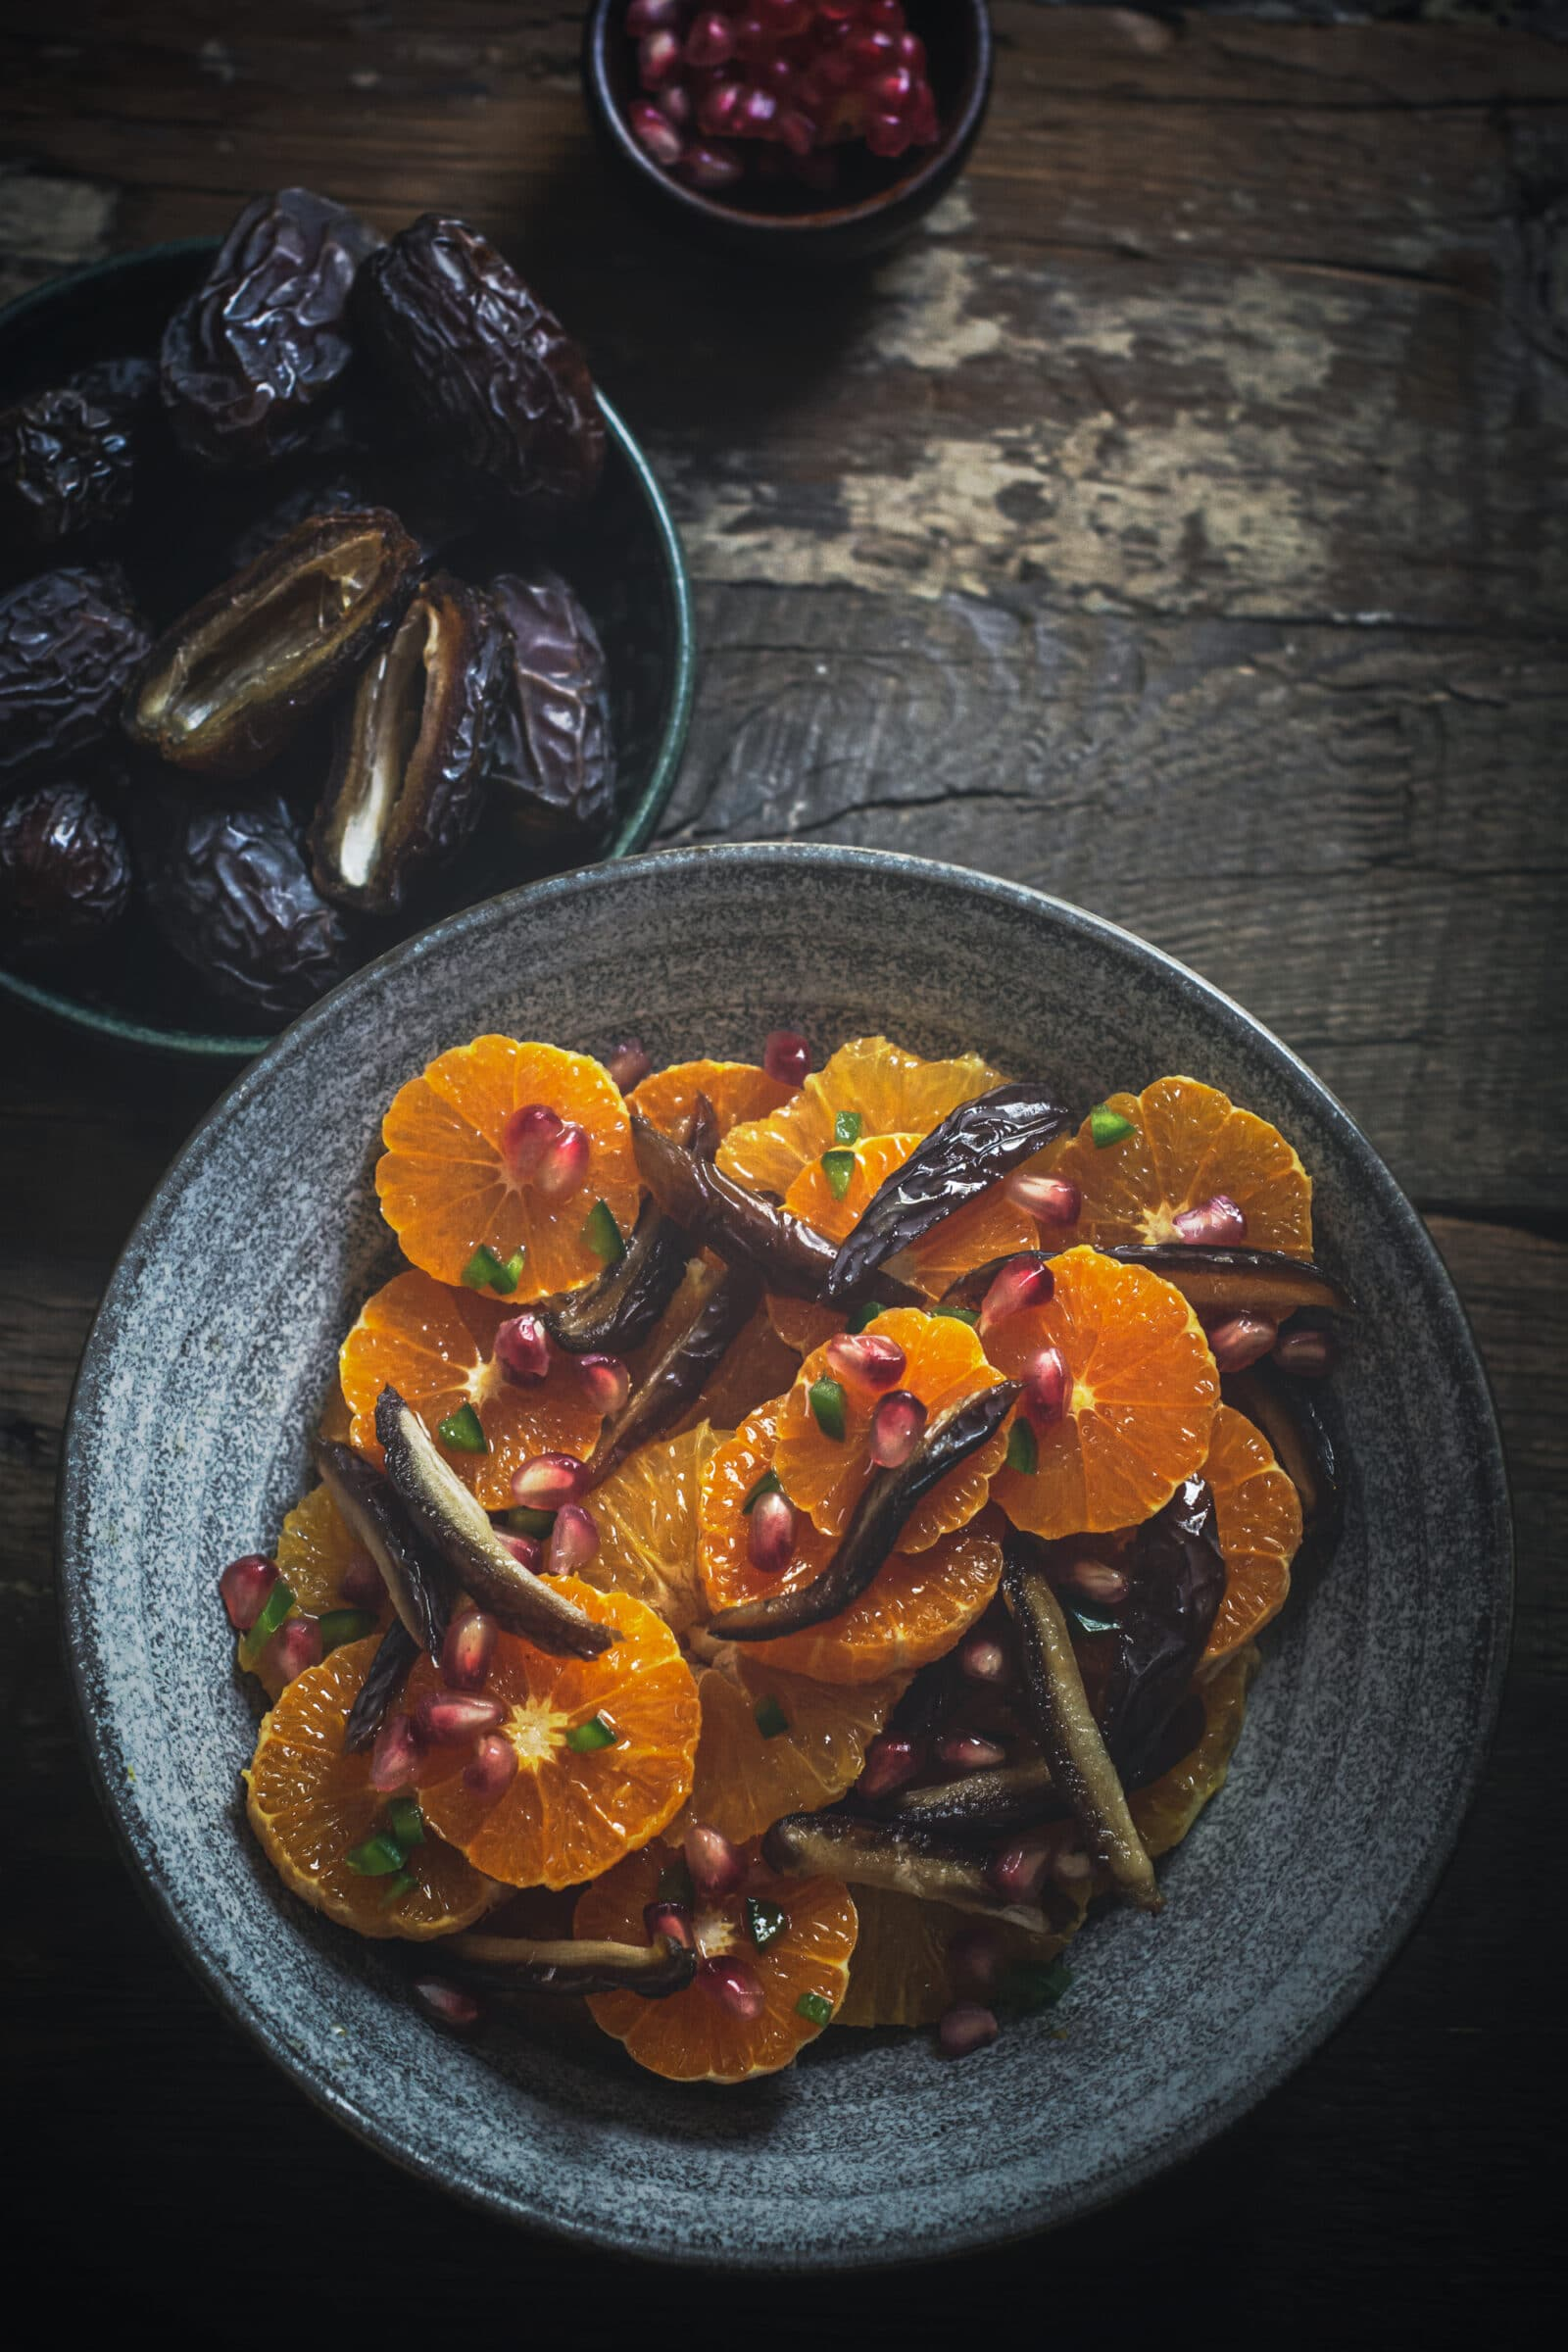 Moroccan Inspired Date and Orange Salad